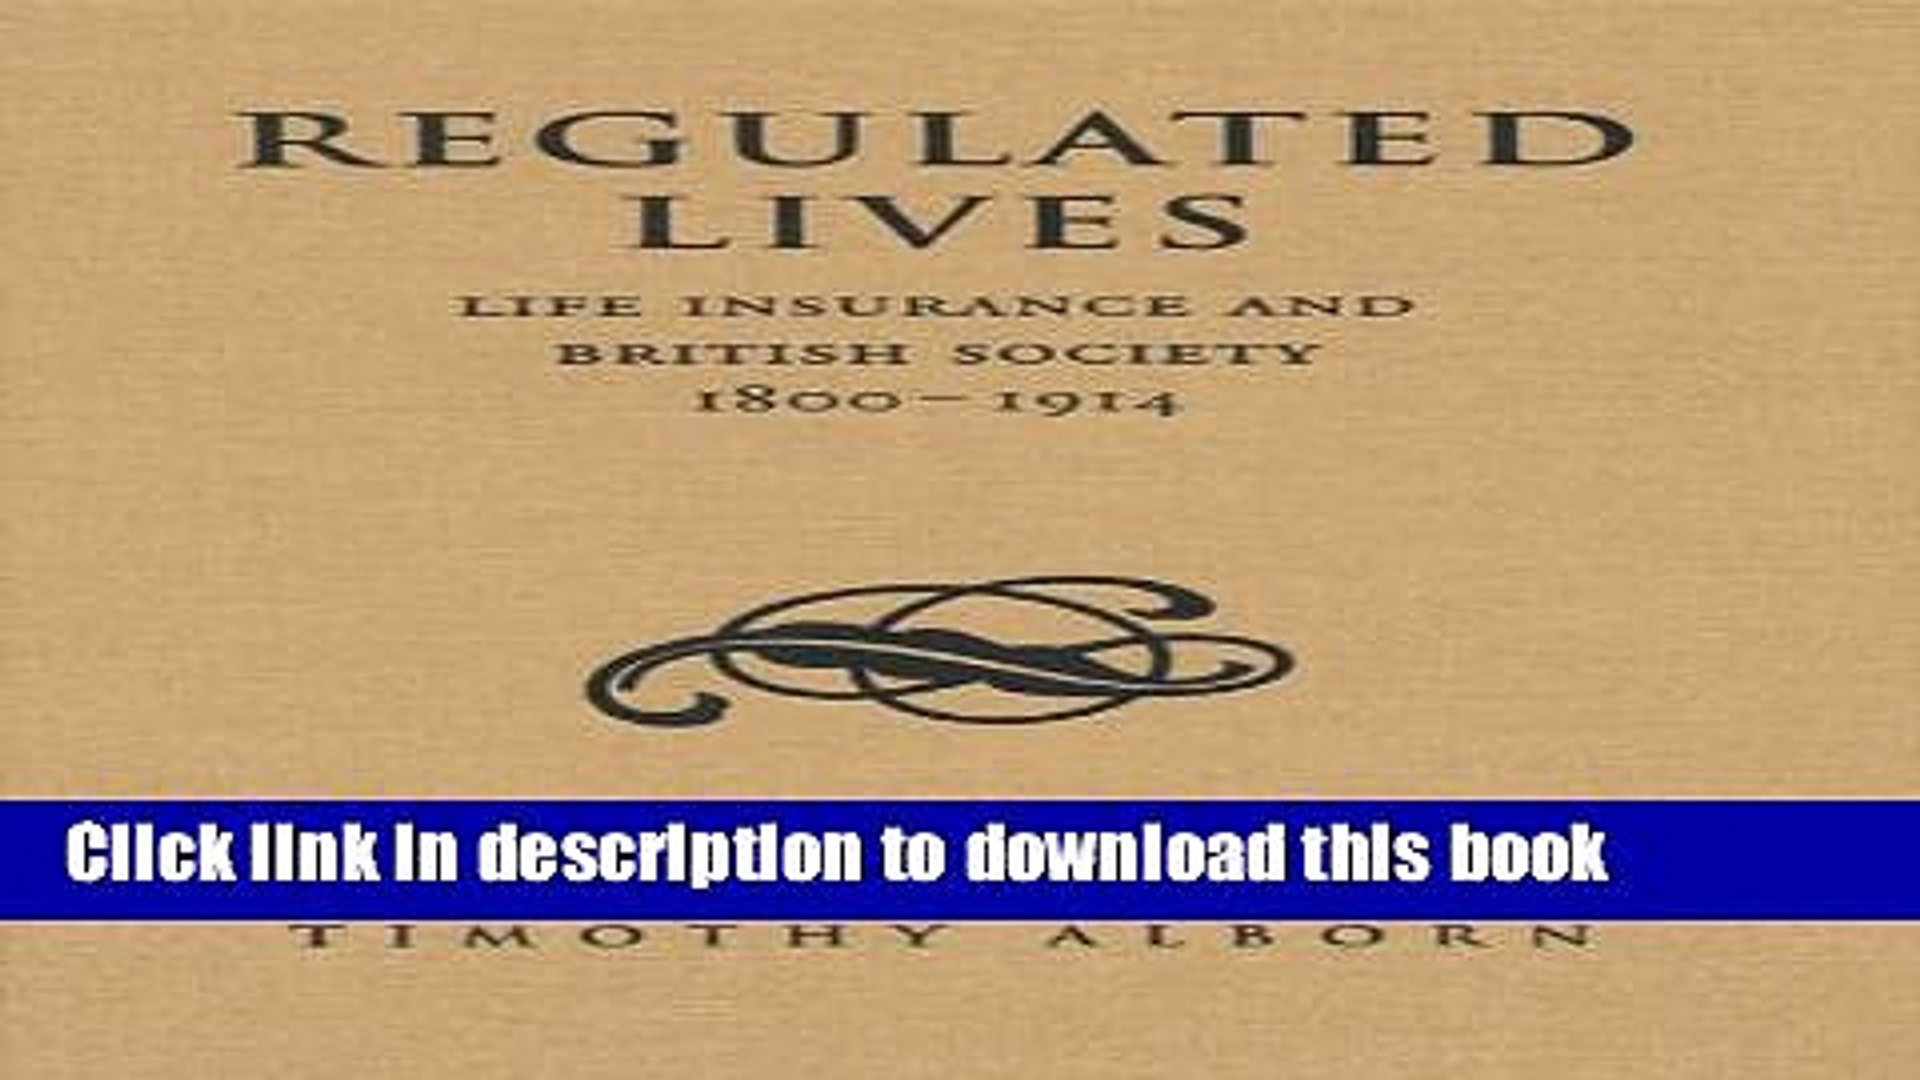 [Download] Regulated Lives: Life Insurance and British Society, 1800-1914 Kindle Collection